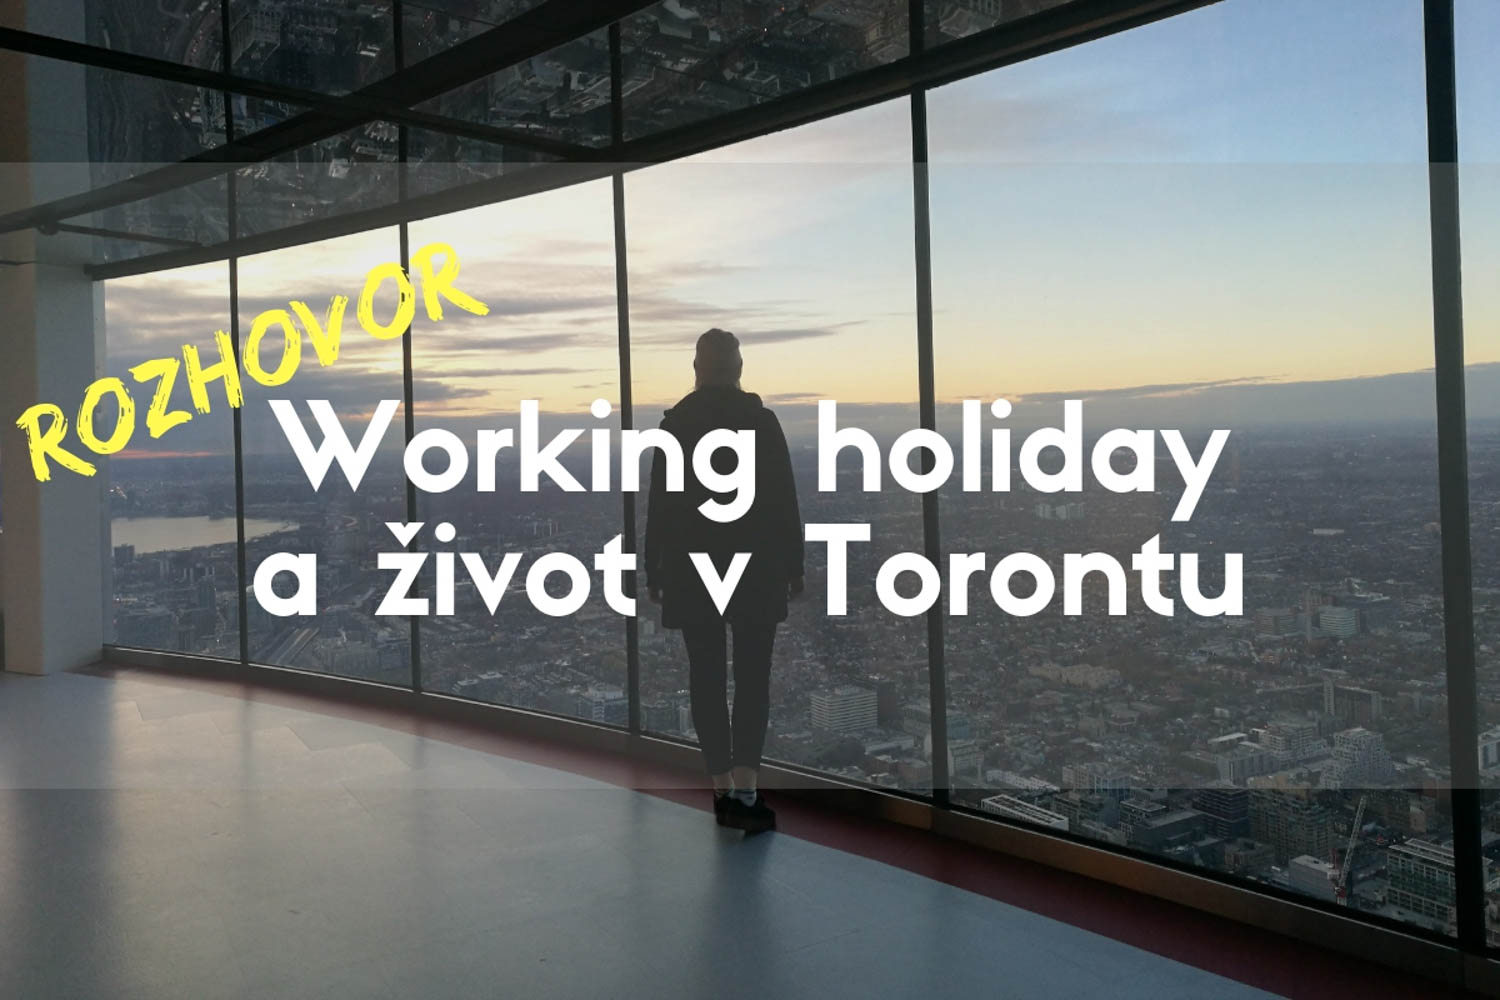 Working holiday v Torontu